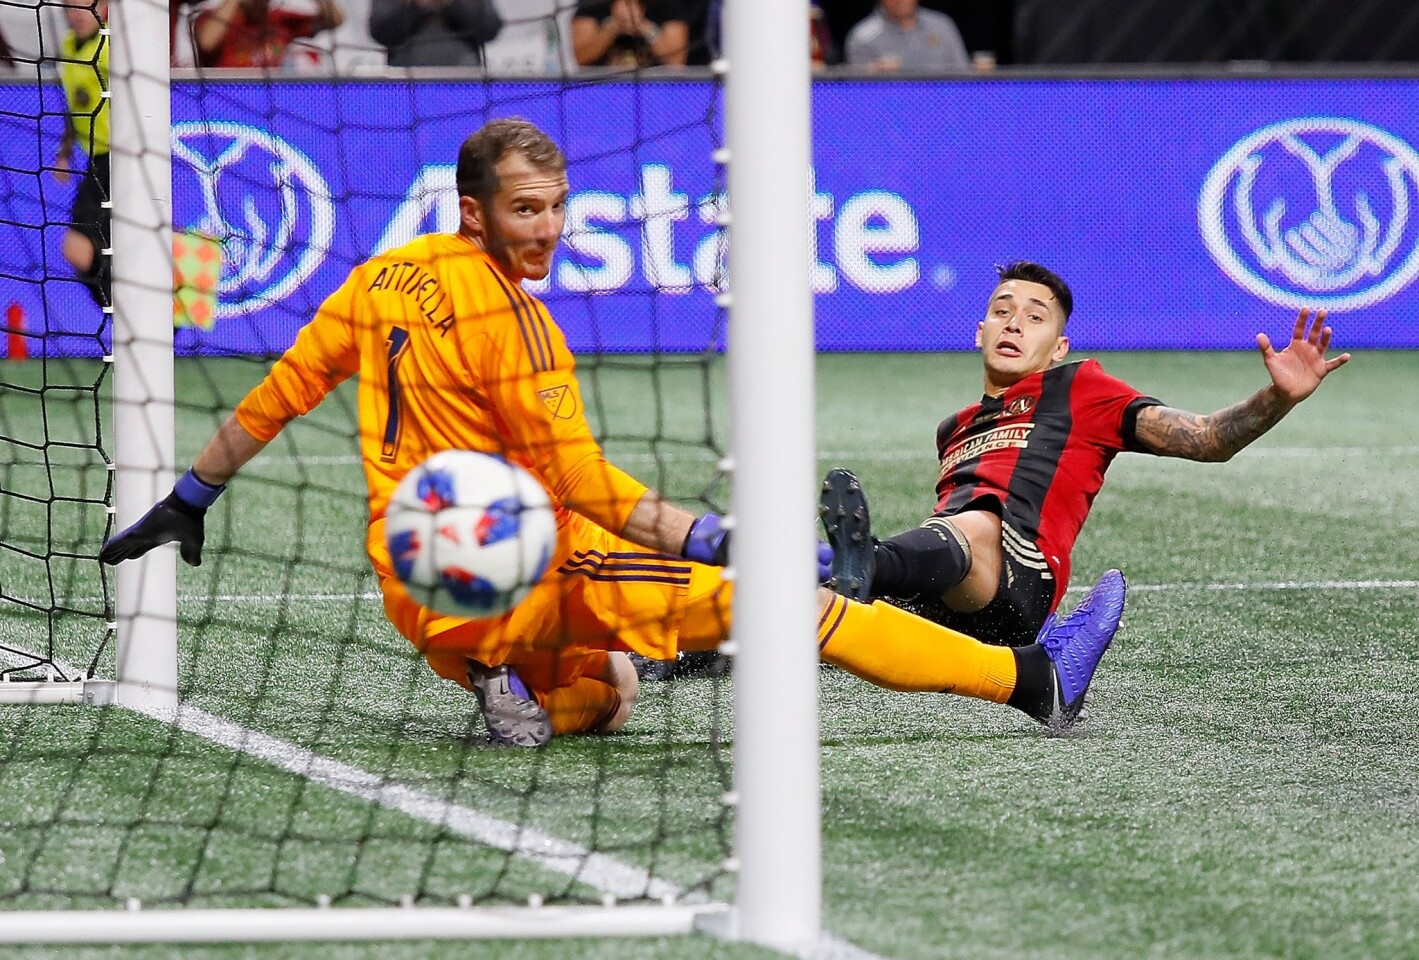 ATLANTA, GA - DECEMBER 08: Franco Escobar #2 of Atlanta United scores the second goal past goalkeeper Jeff Attinella #1 of Portland Timbers in the second half during the 2018 MLS Cup between Atlanta United and the Portland Timbers at Mercedes-Benz Stadium on December 8, 2018 in Atlanta, Georgia. (Photo by Kevin C. Cox/Getty Images) ** OUTS - ELSENT, FPG, CM - OUTS * NM, PH, VA if sourced by CT, LA or MoD **